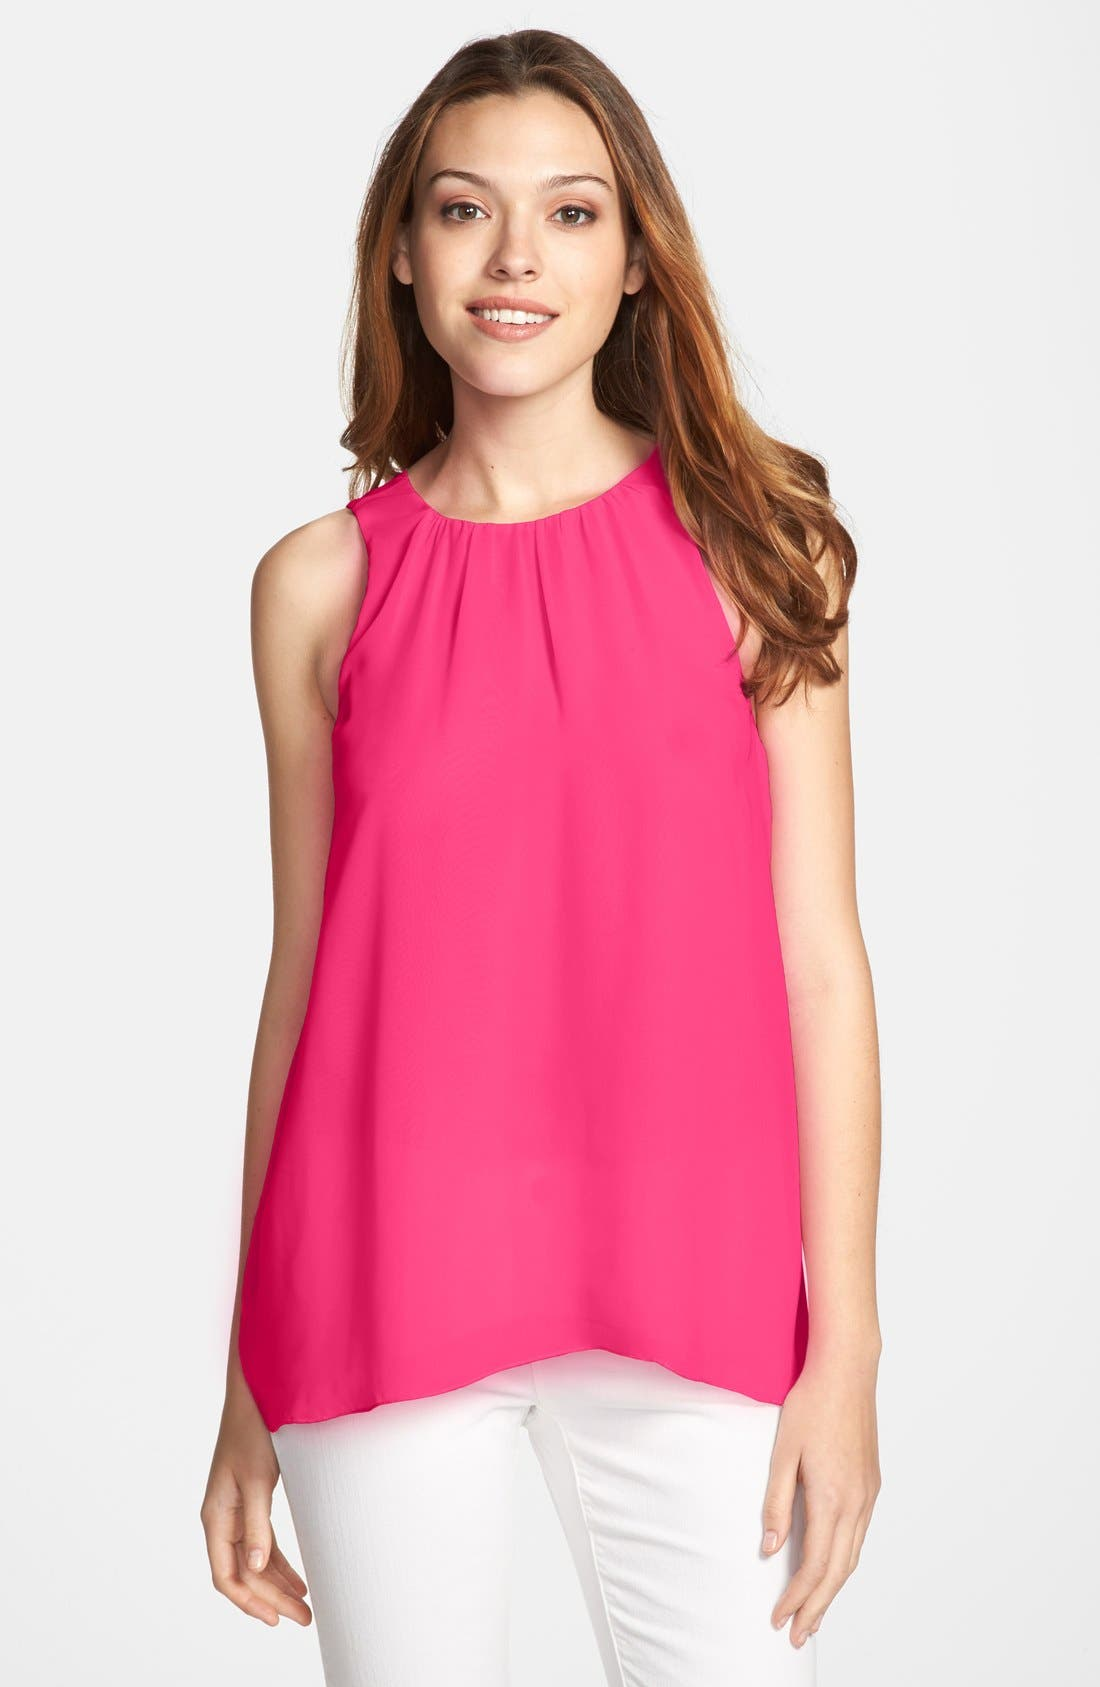 Alternate Image 1 Selected - Vince Camuto Sleeveless Chiffon Blouse (Regular & Petite)